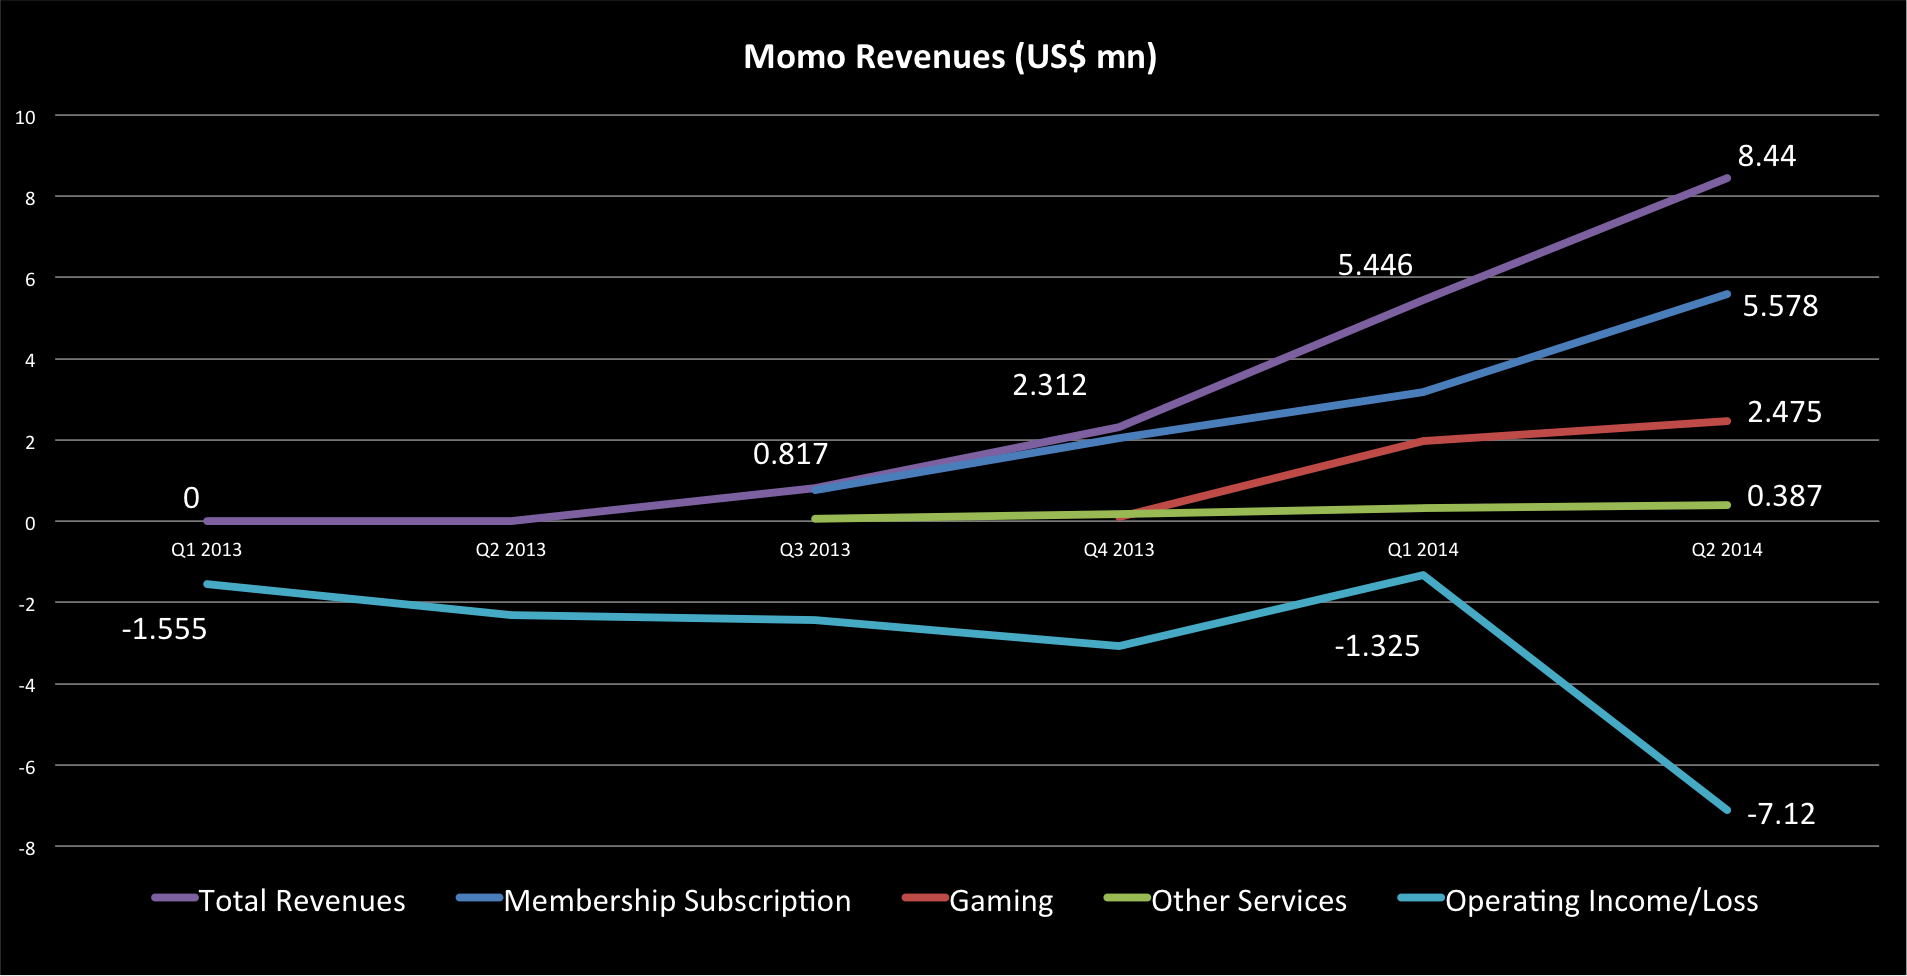 Source: Momo (Click Image to Enlarge)